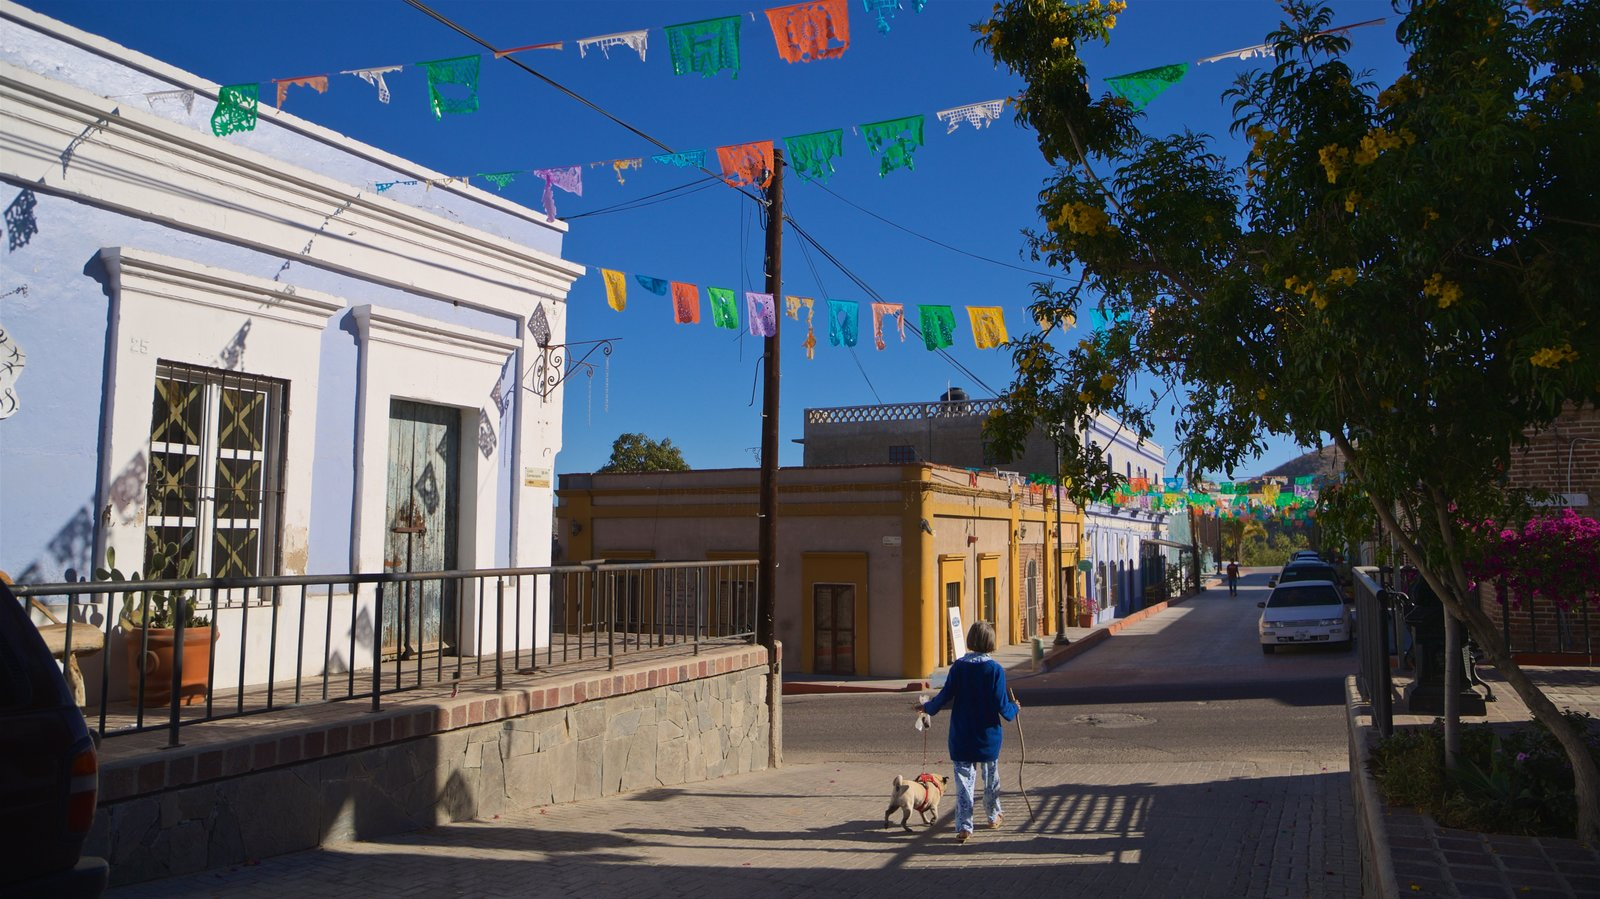 Todos Santos showing cuddly or friendly animals as well as an individual femail